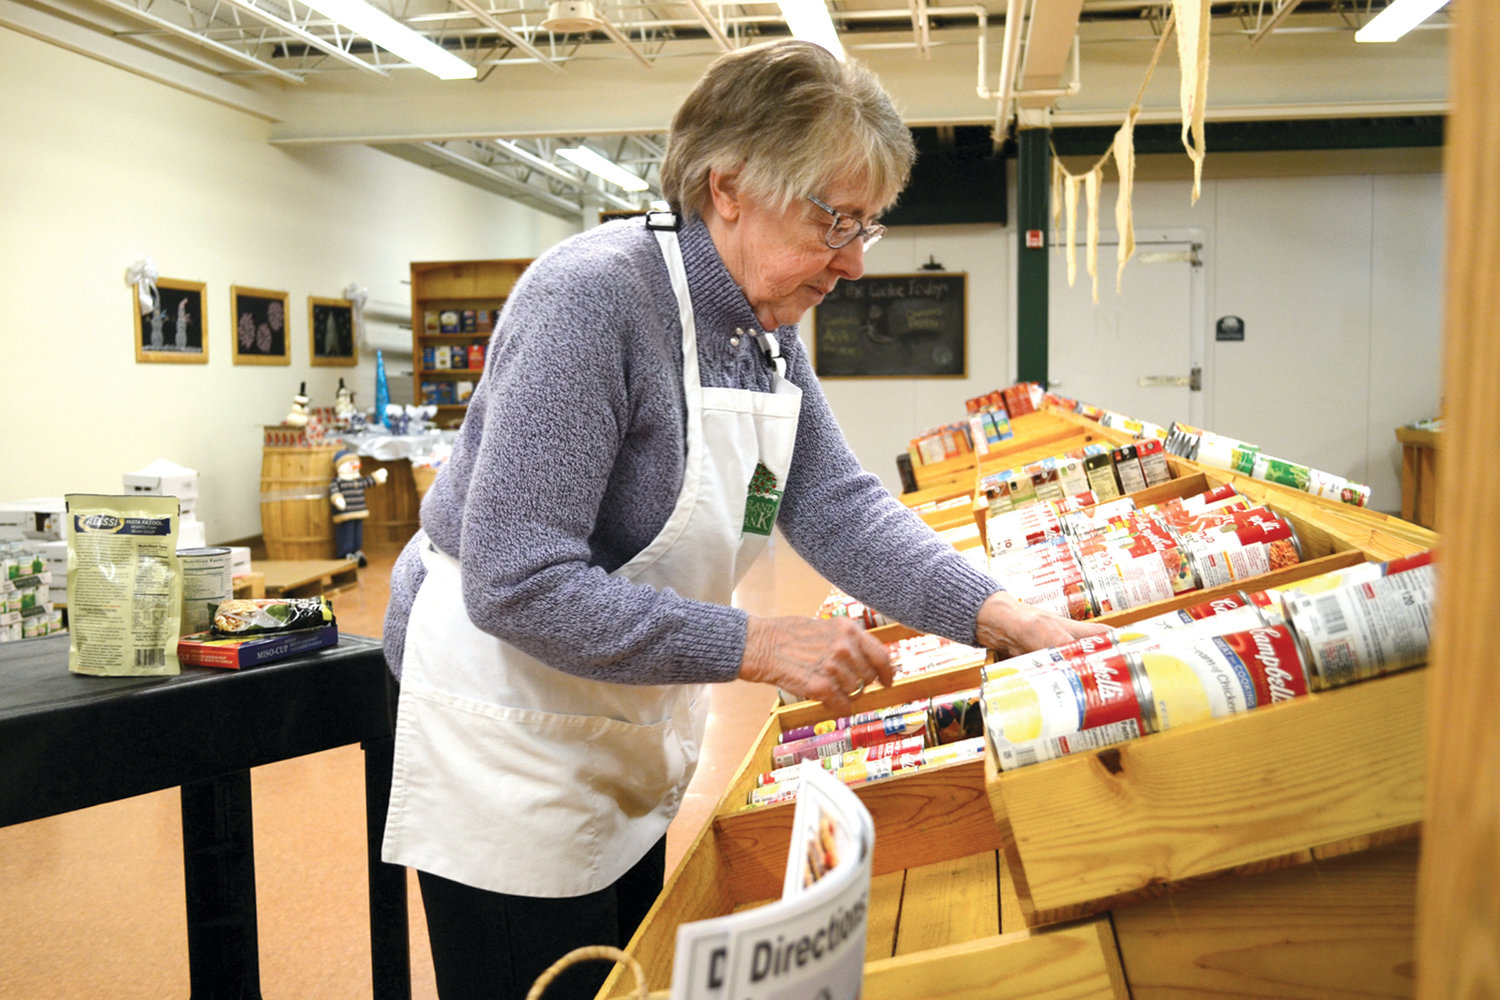 OTHER WAYS TO HELP: Some people donate food or money, but others, like Warwick resident Judy Marshall, donate their time as volunteers. Marshall has been helping out at the Rhode Island Community Food bank since 2005.